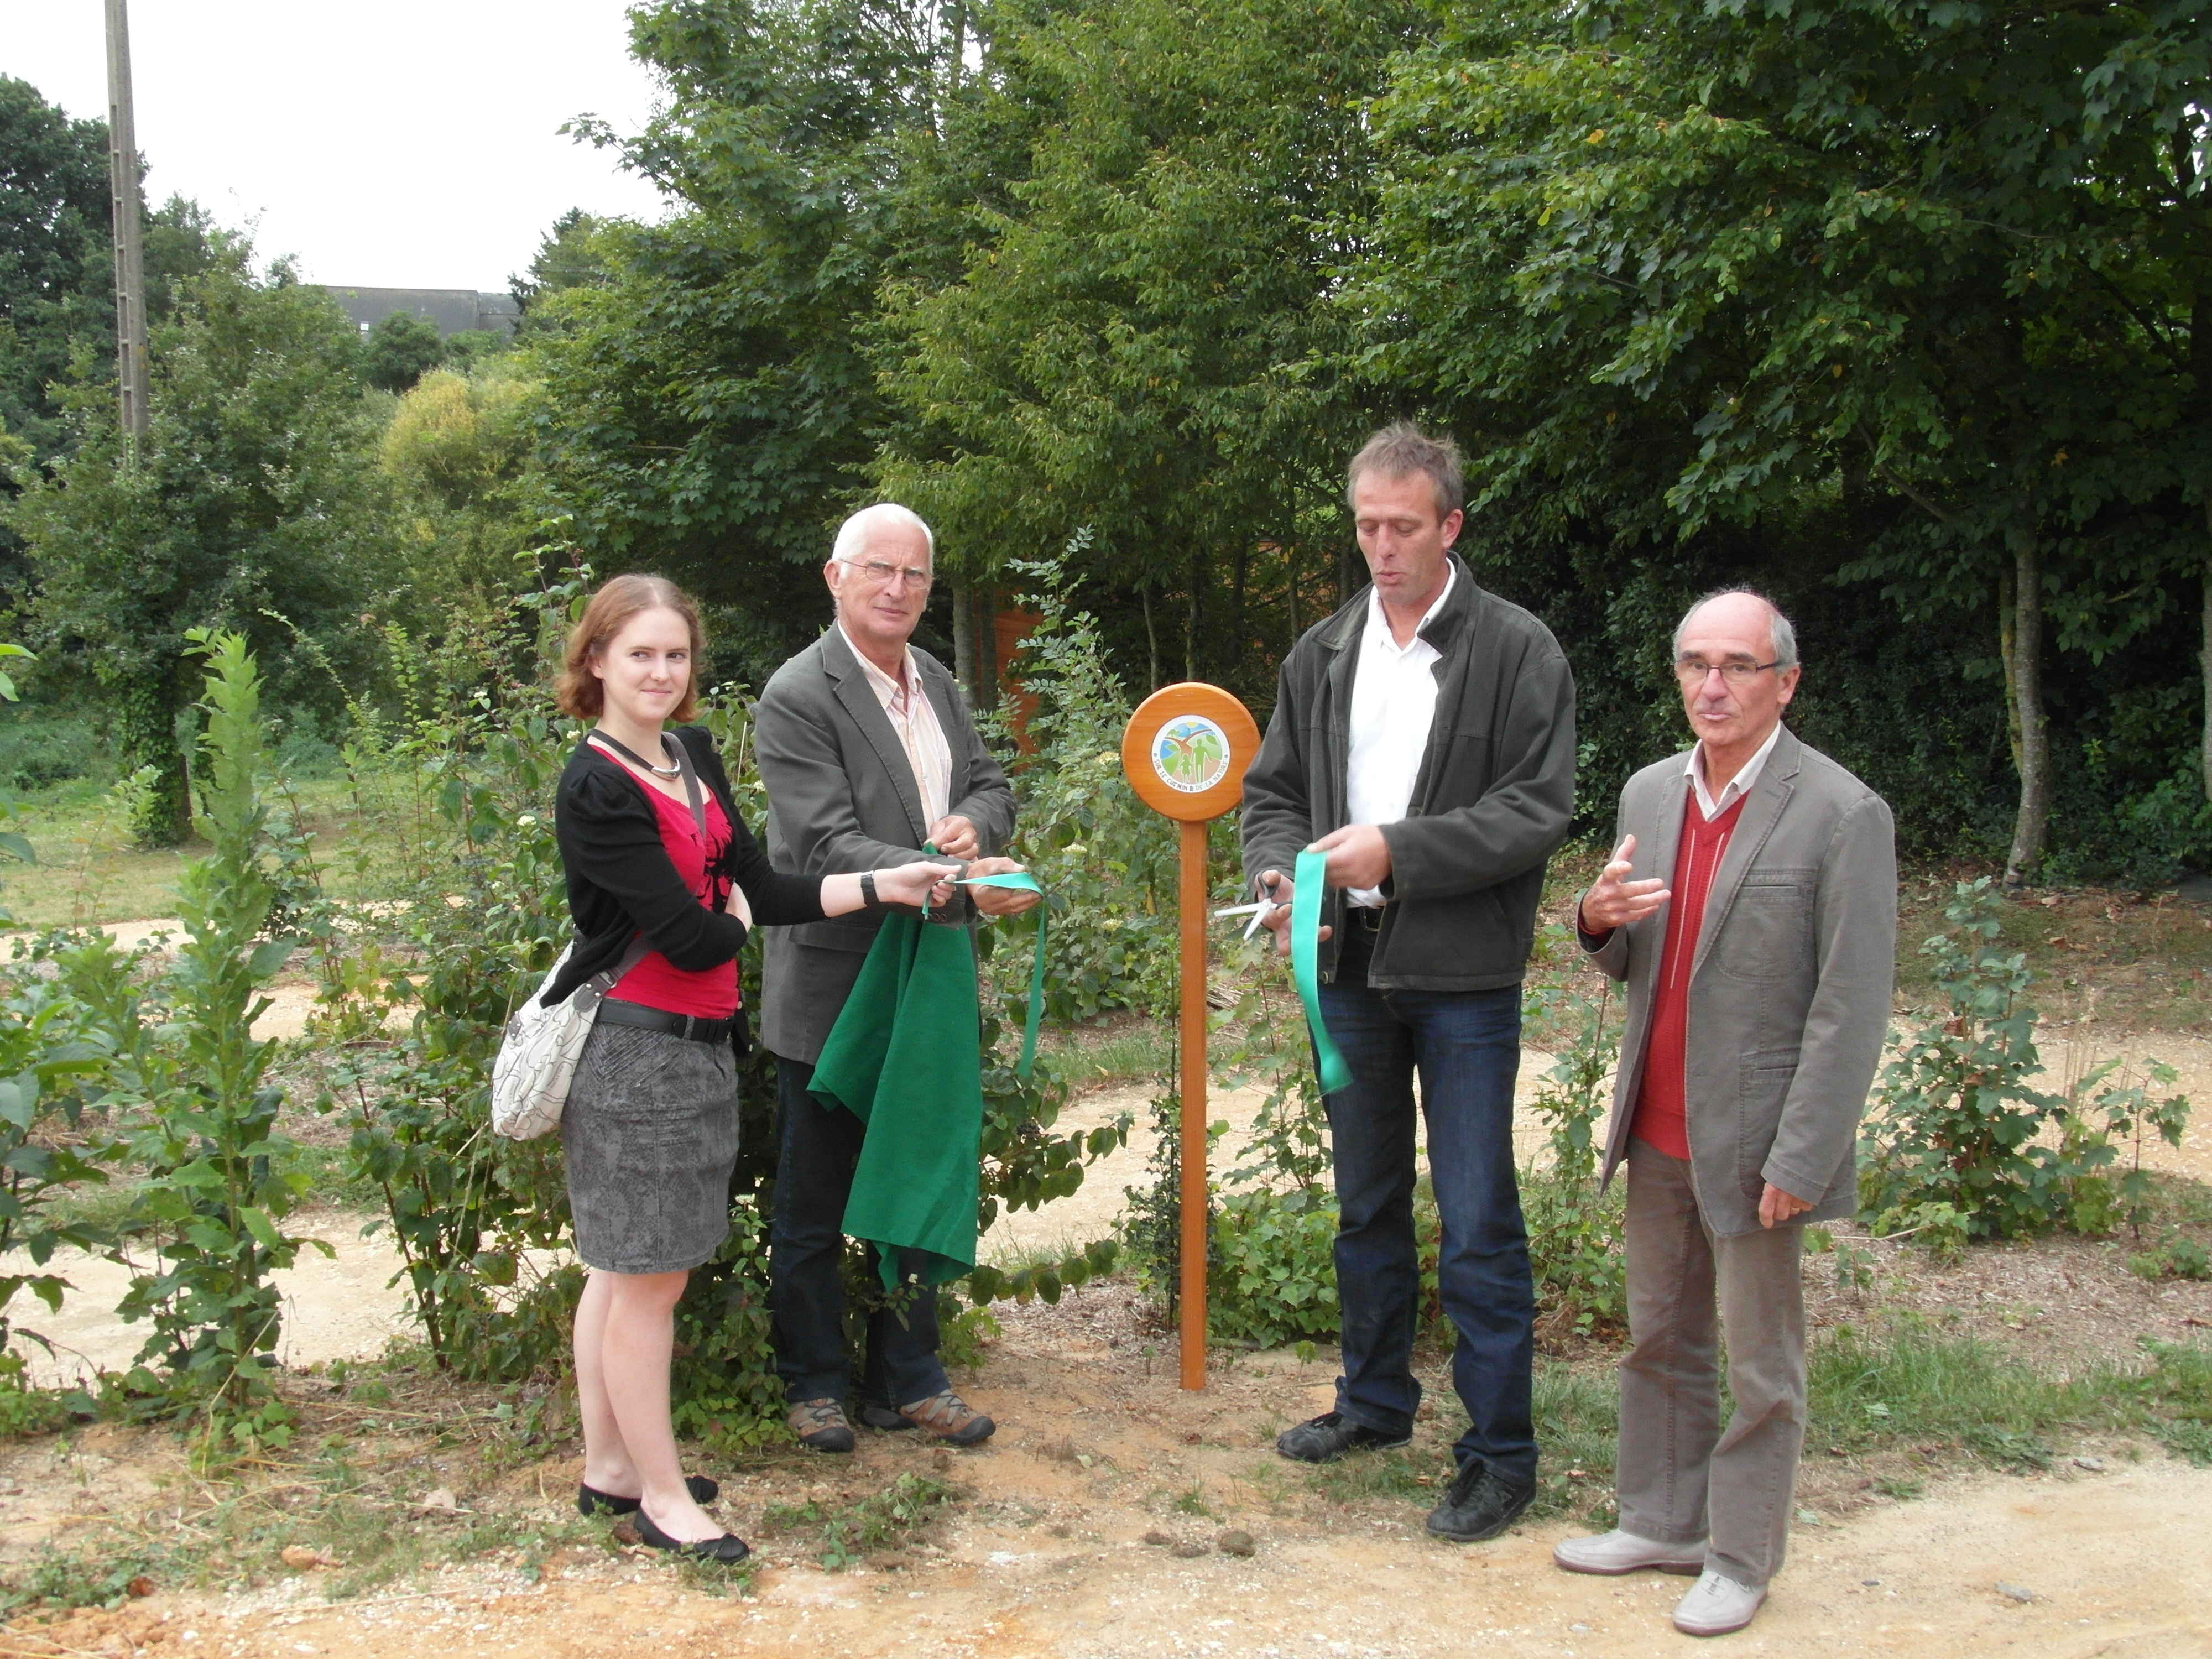 inauguration chemin nature Peuton 1 sept 12-comp3